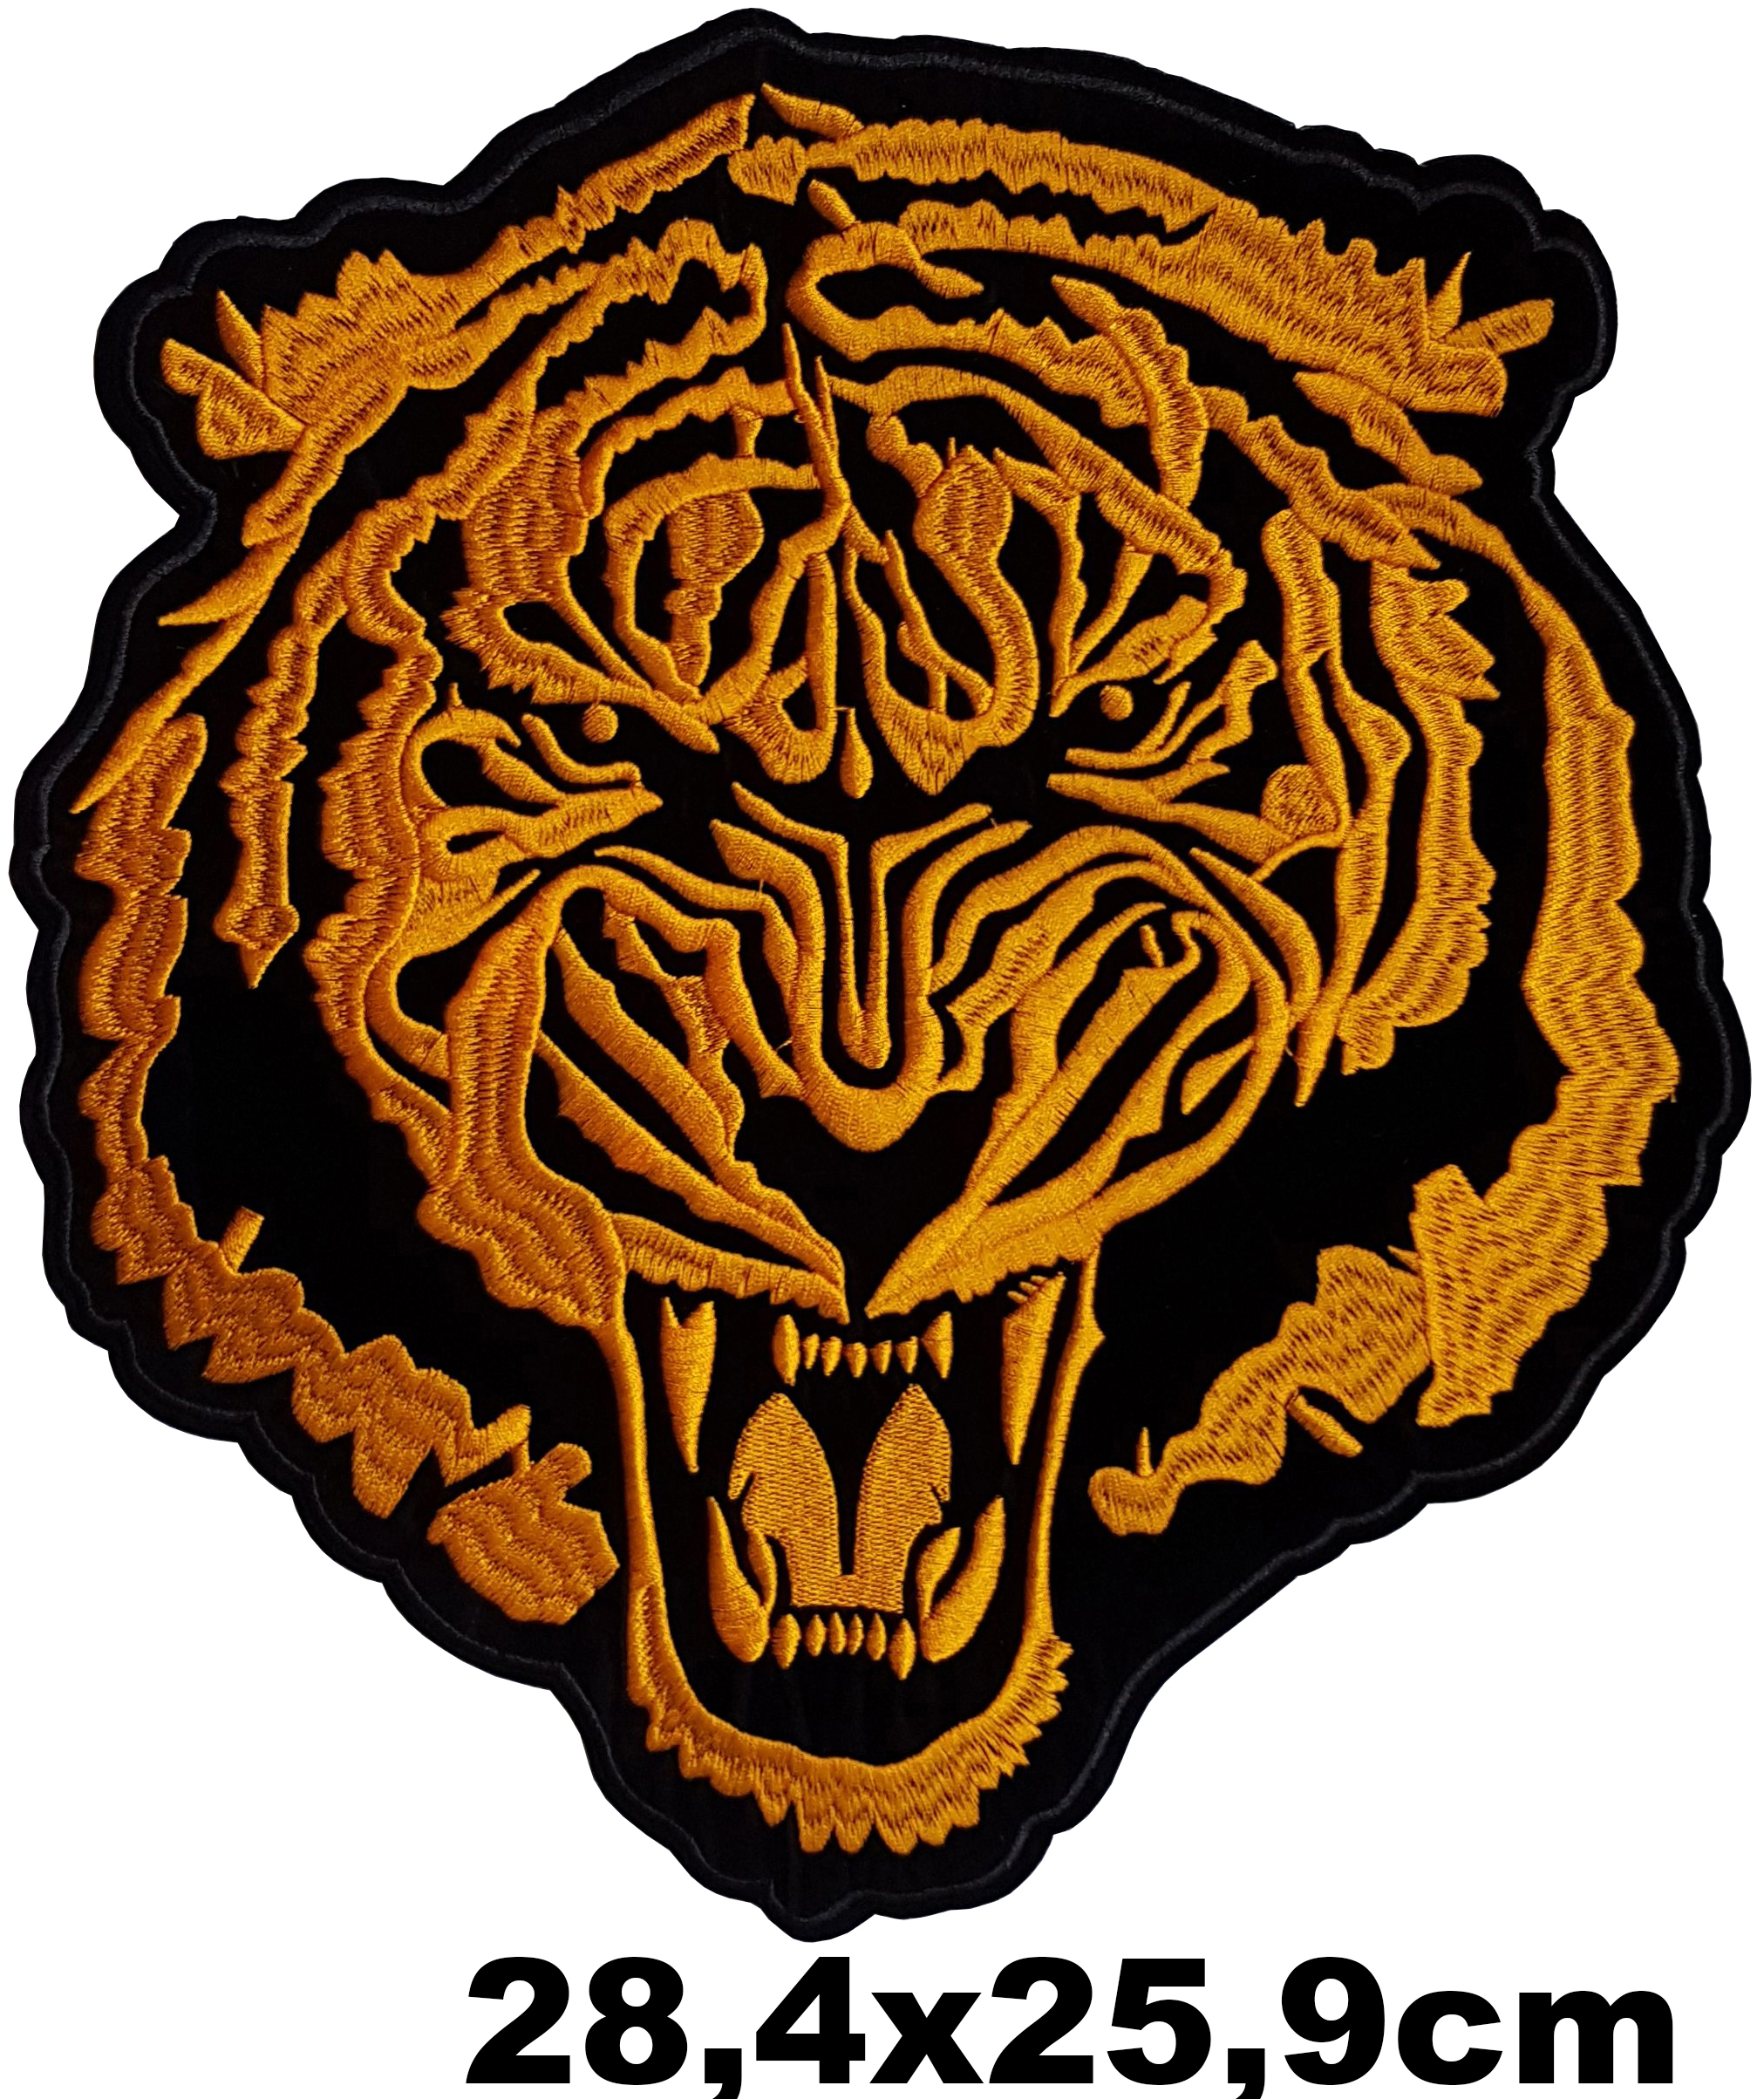 Grand Patch Thermocollant Tigre Rugissant